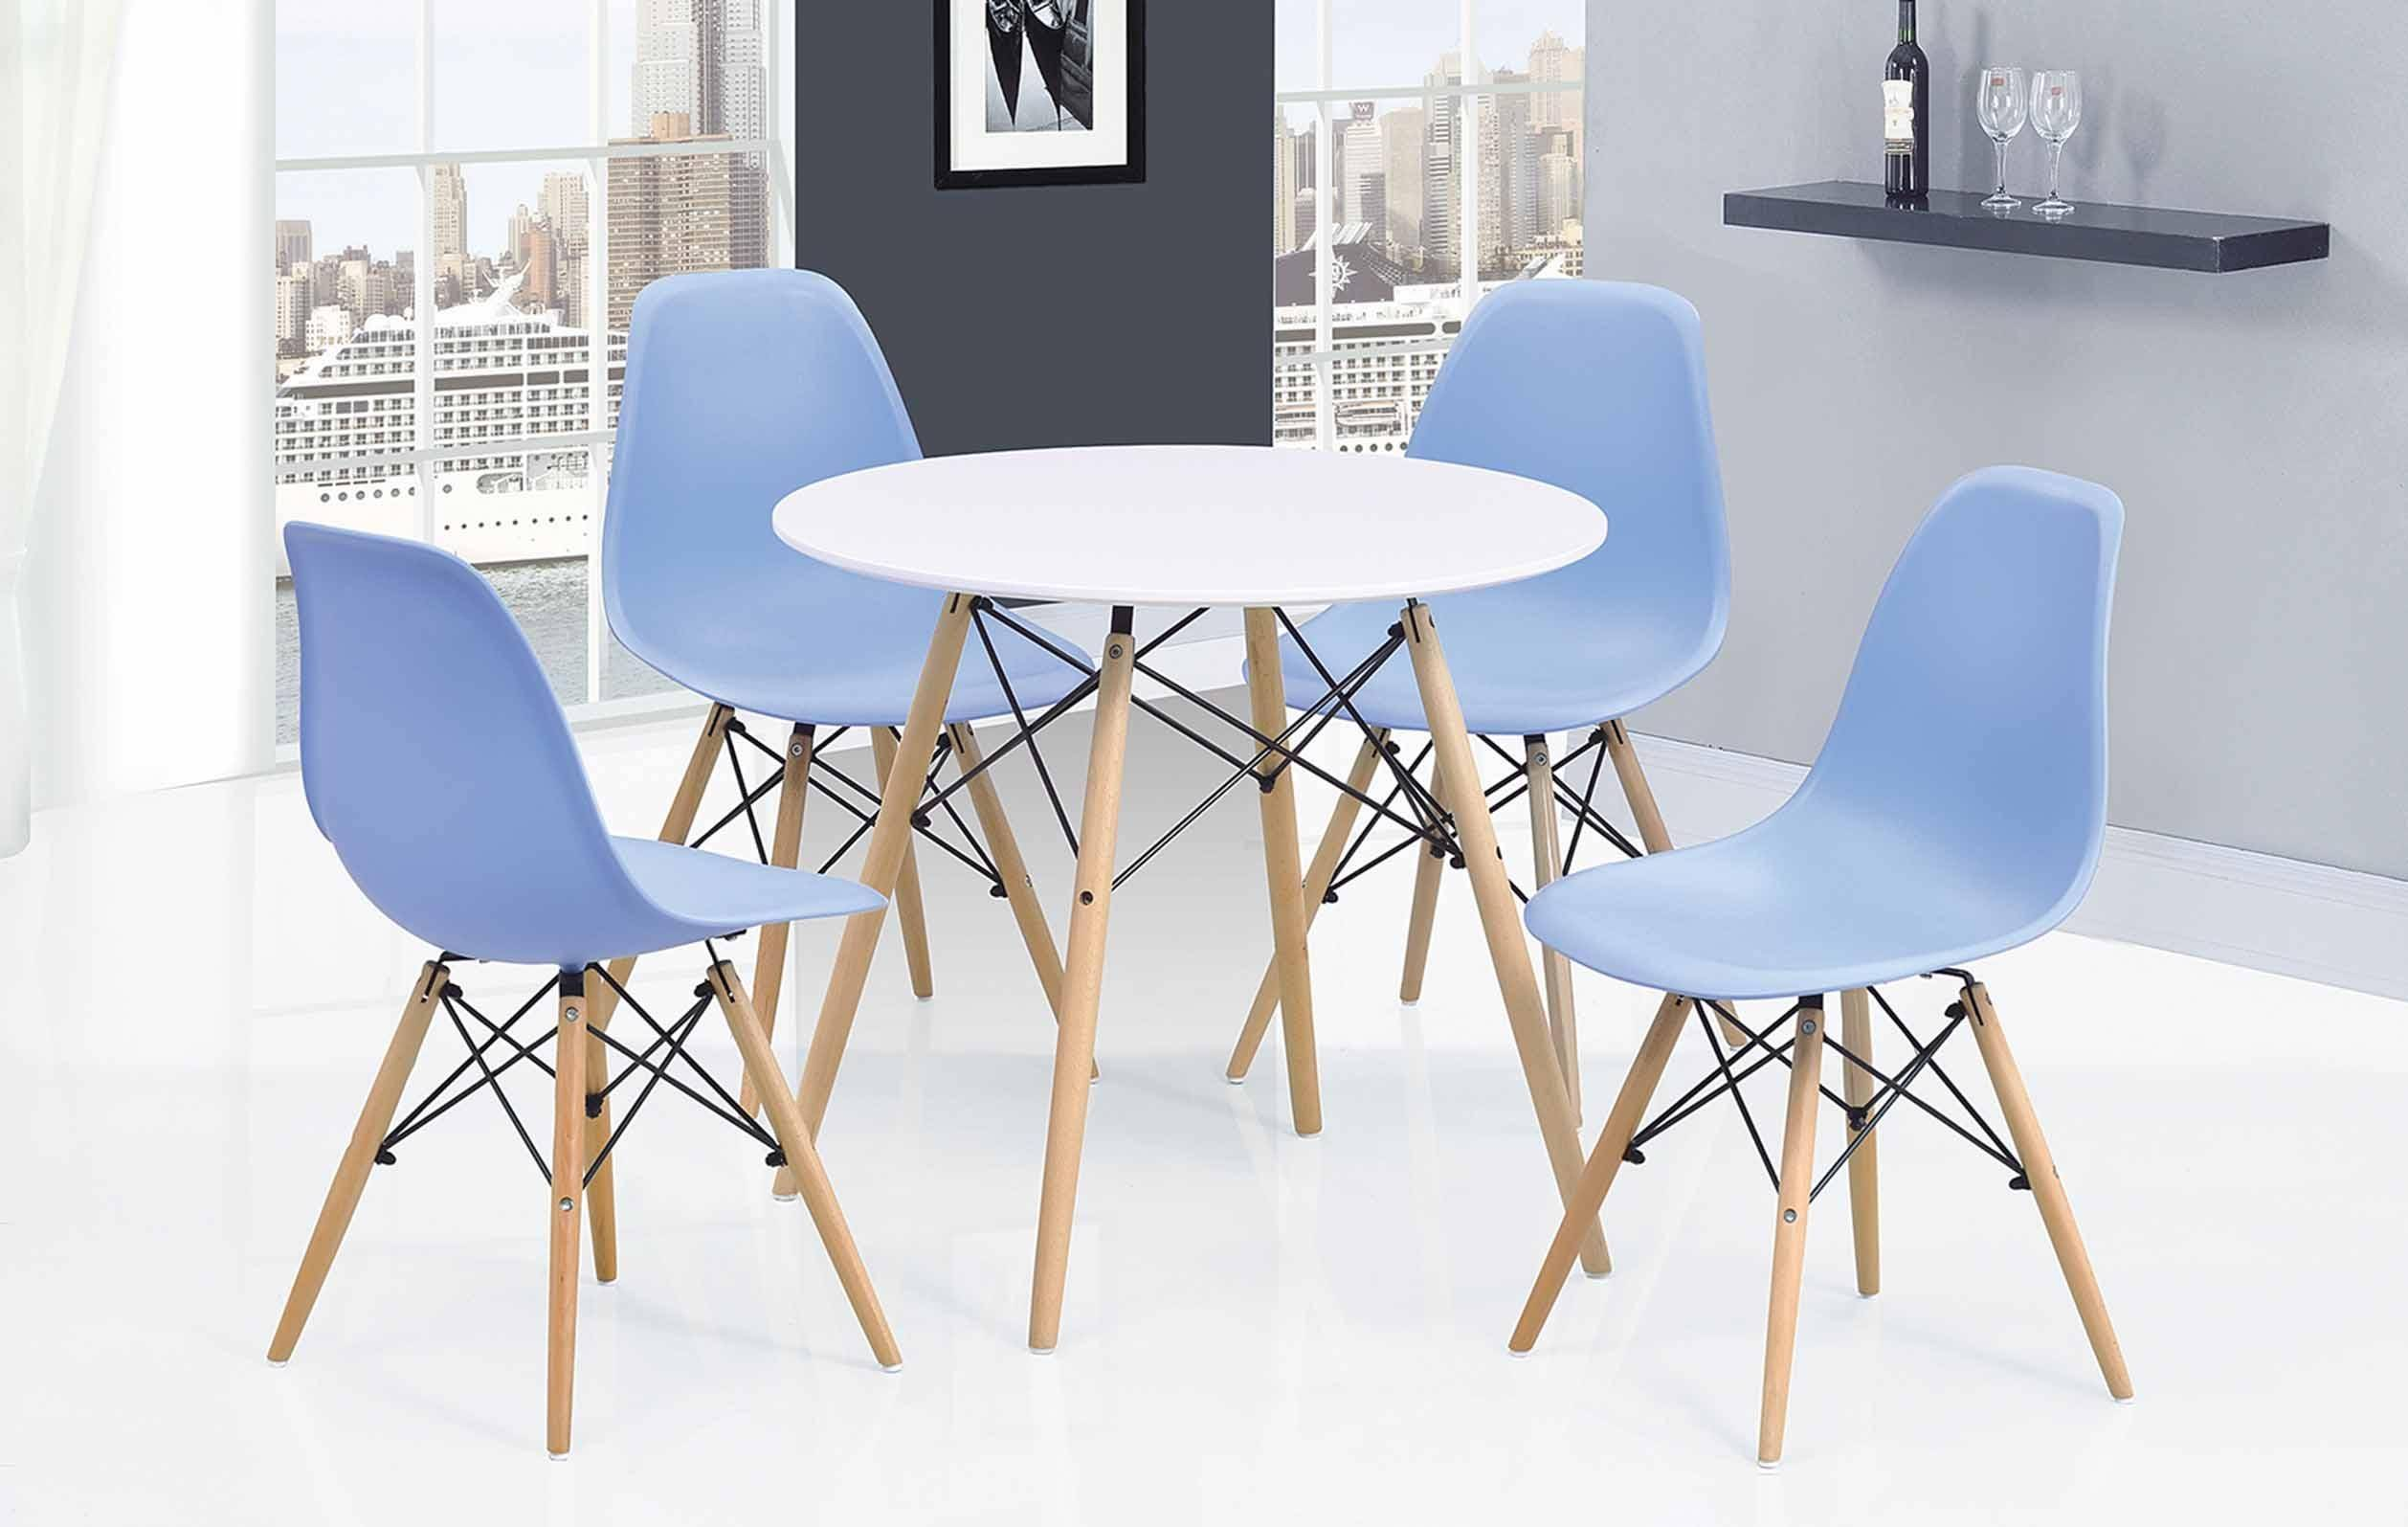 Surprising Esf 902 Dt 971 Dc Modern Casual Round Dining Table Blue Chairs Dining Set 5Pcs Alphanode Cool Chair Designs And Ideas Alphanodeonline